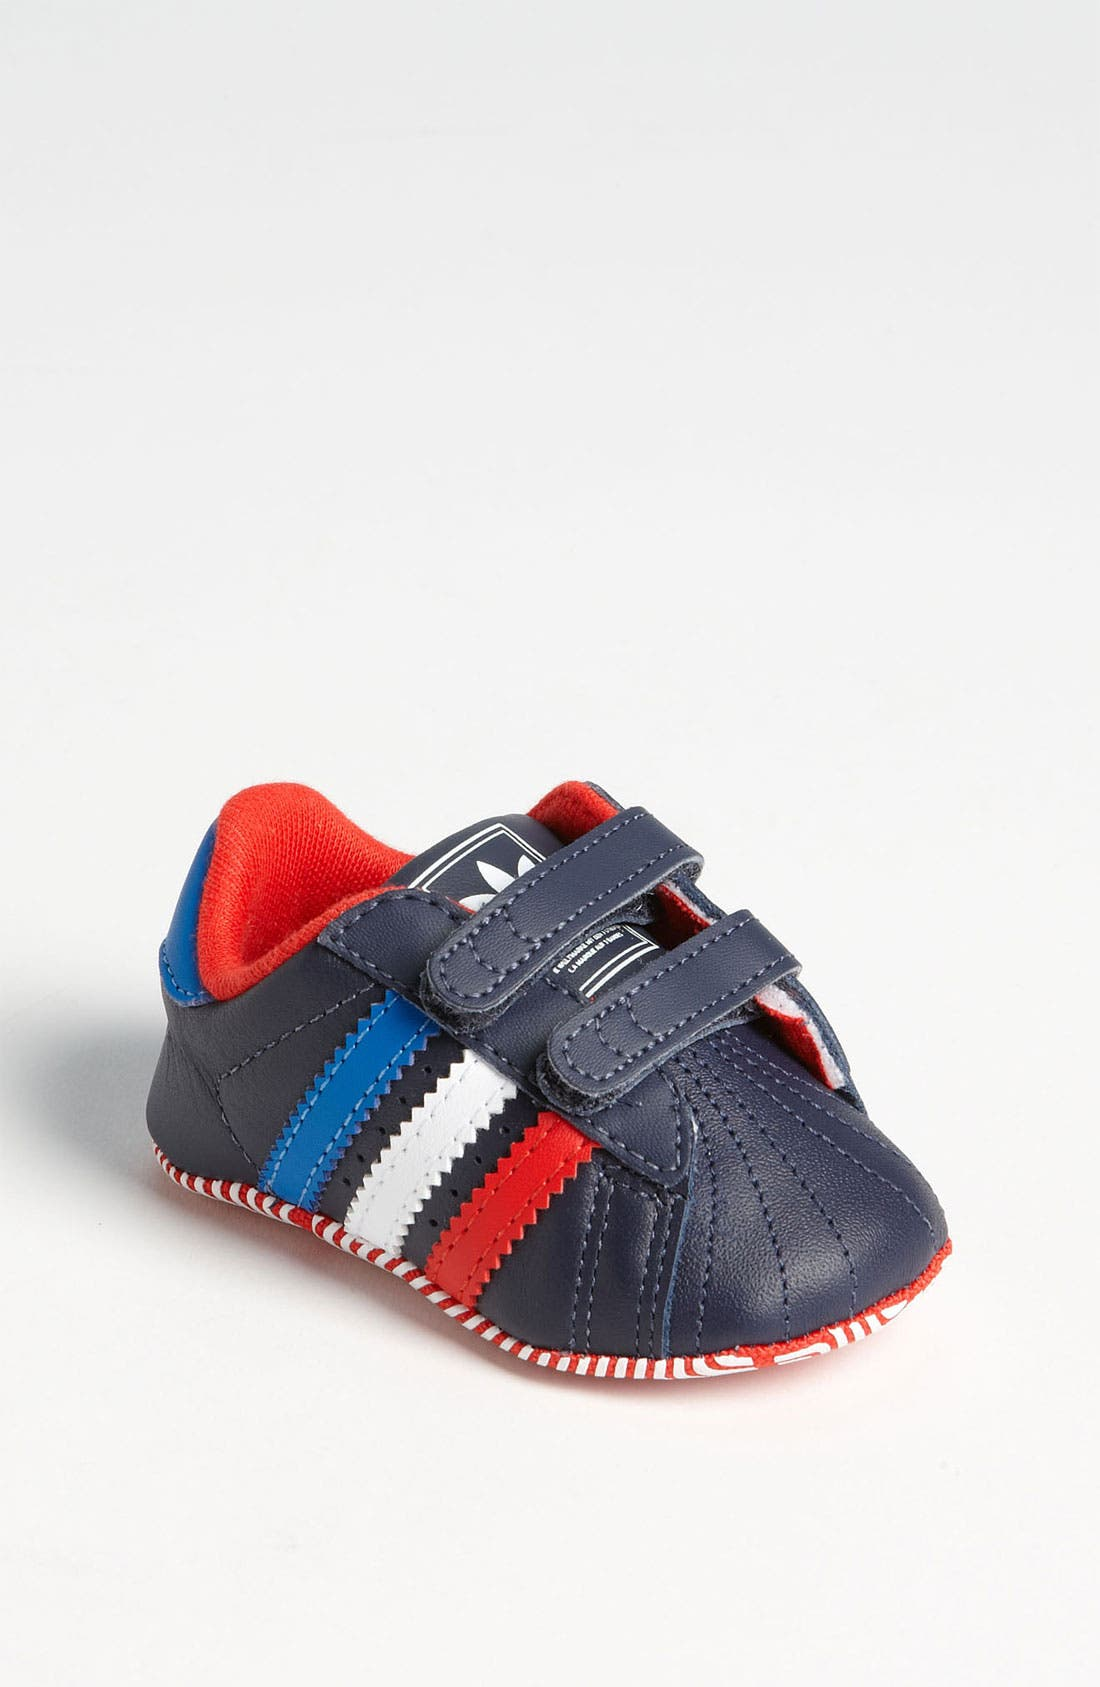 Alternate Image 1 Selected - adidas 'Superstar 2' Crib Shoe (Infant)